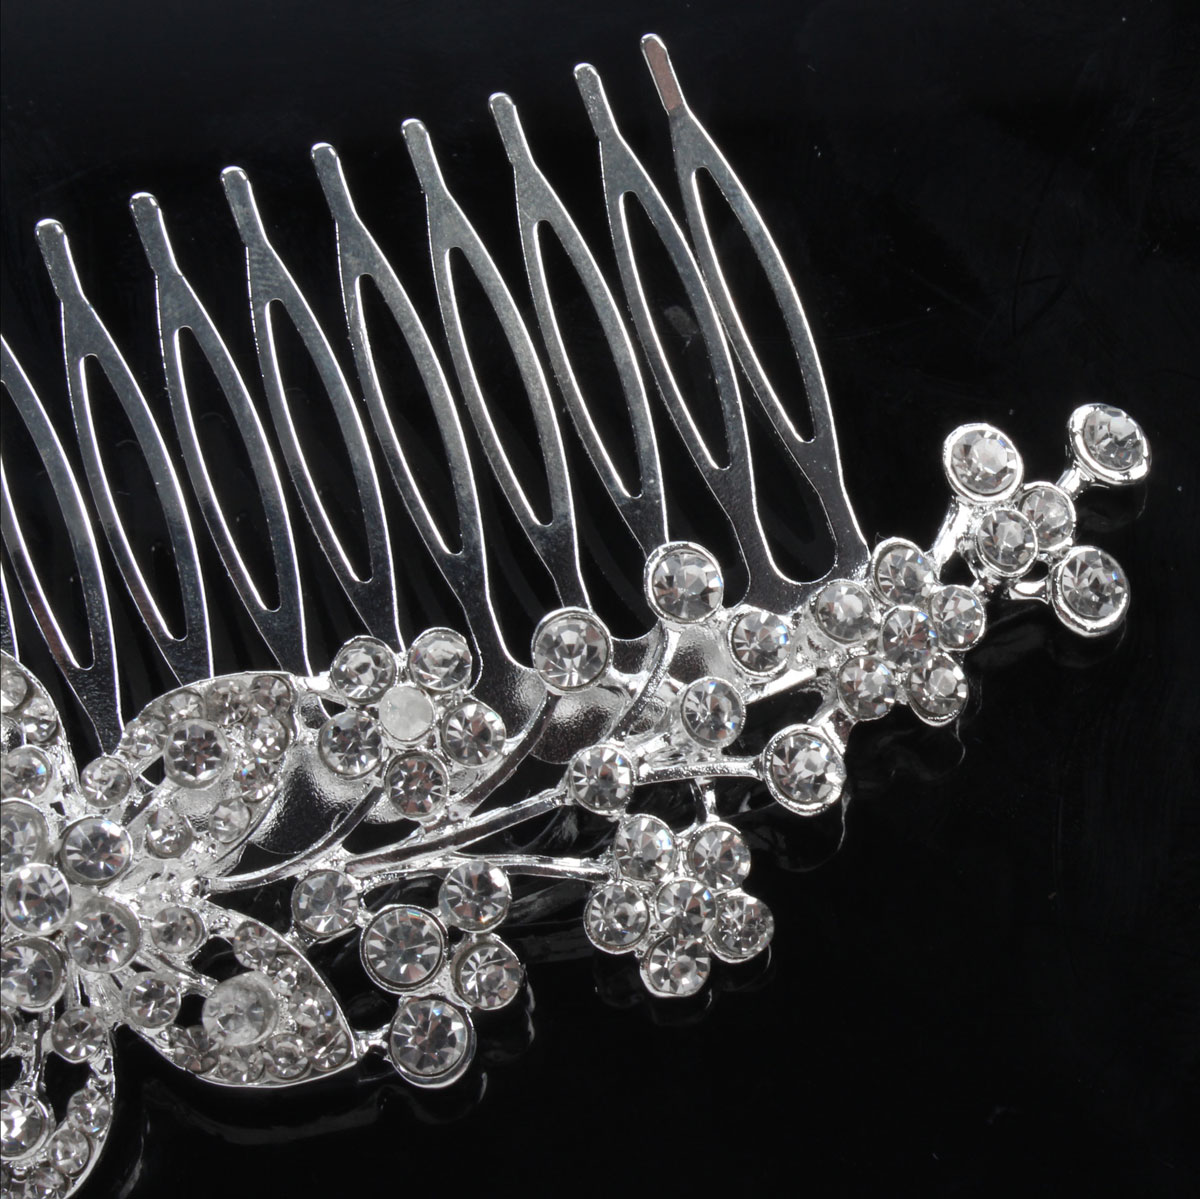 Bride Flower Crystal Rhinestone Alloy Hair Clip Comb Wedding Bridal Headpiece Accessory